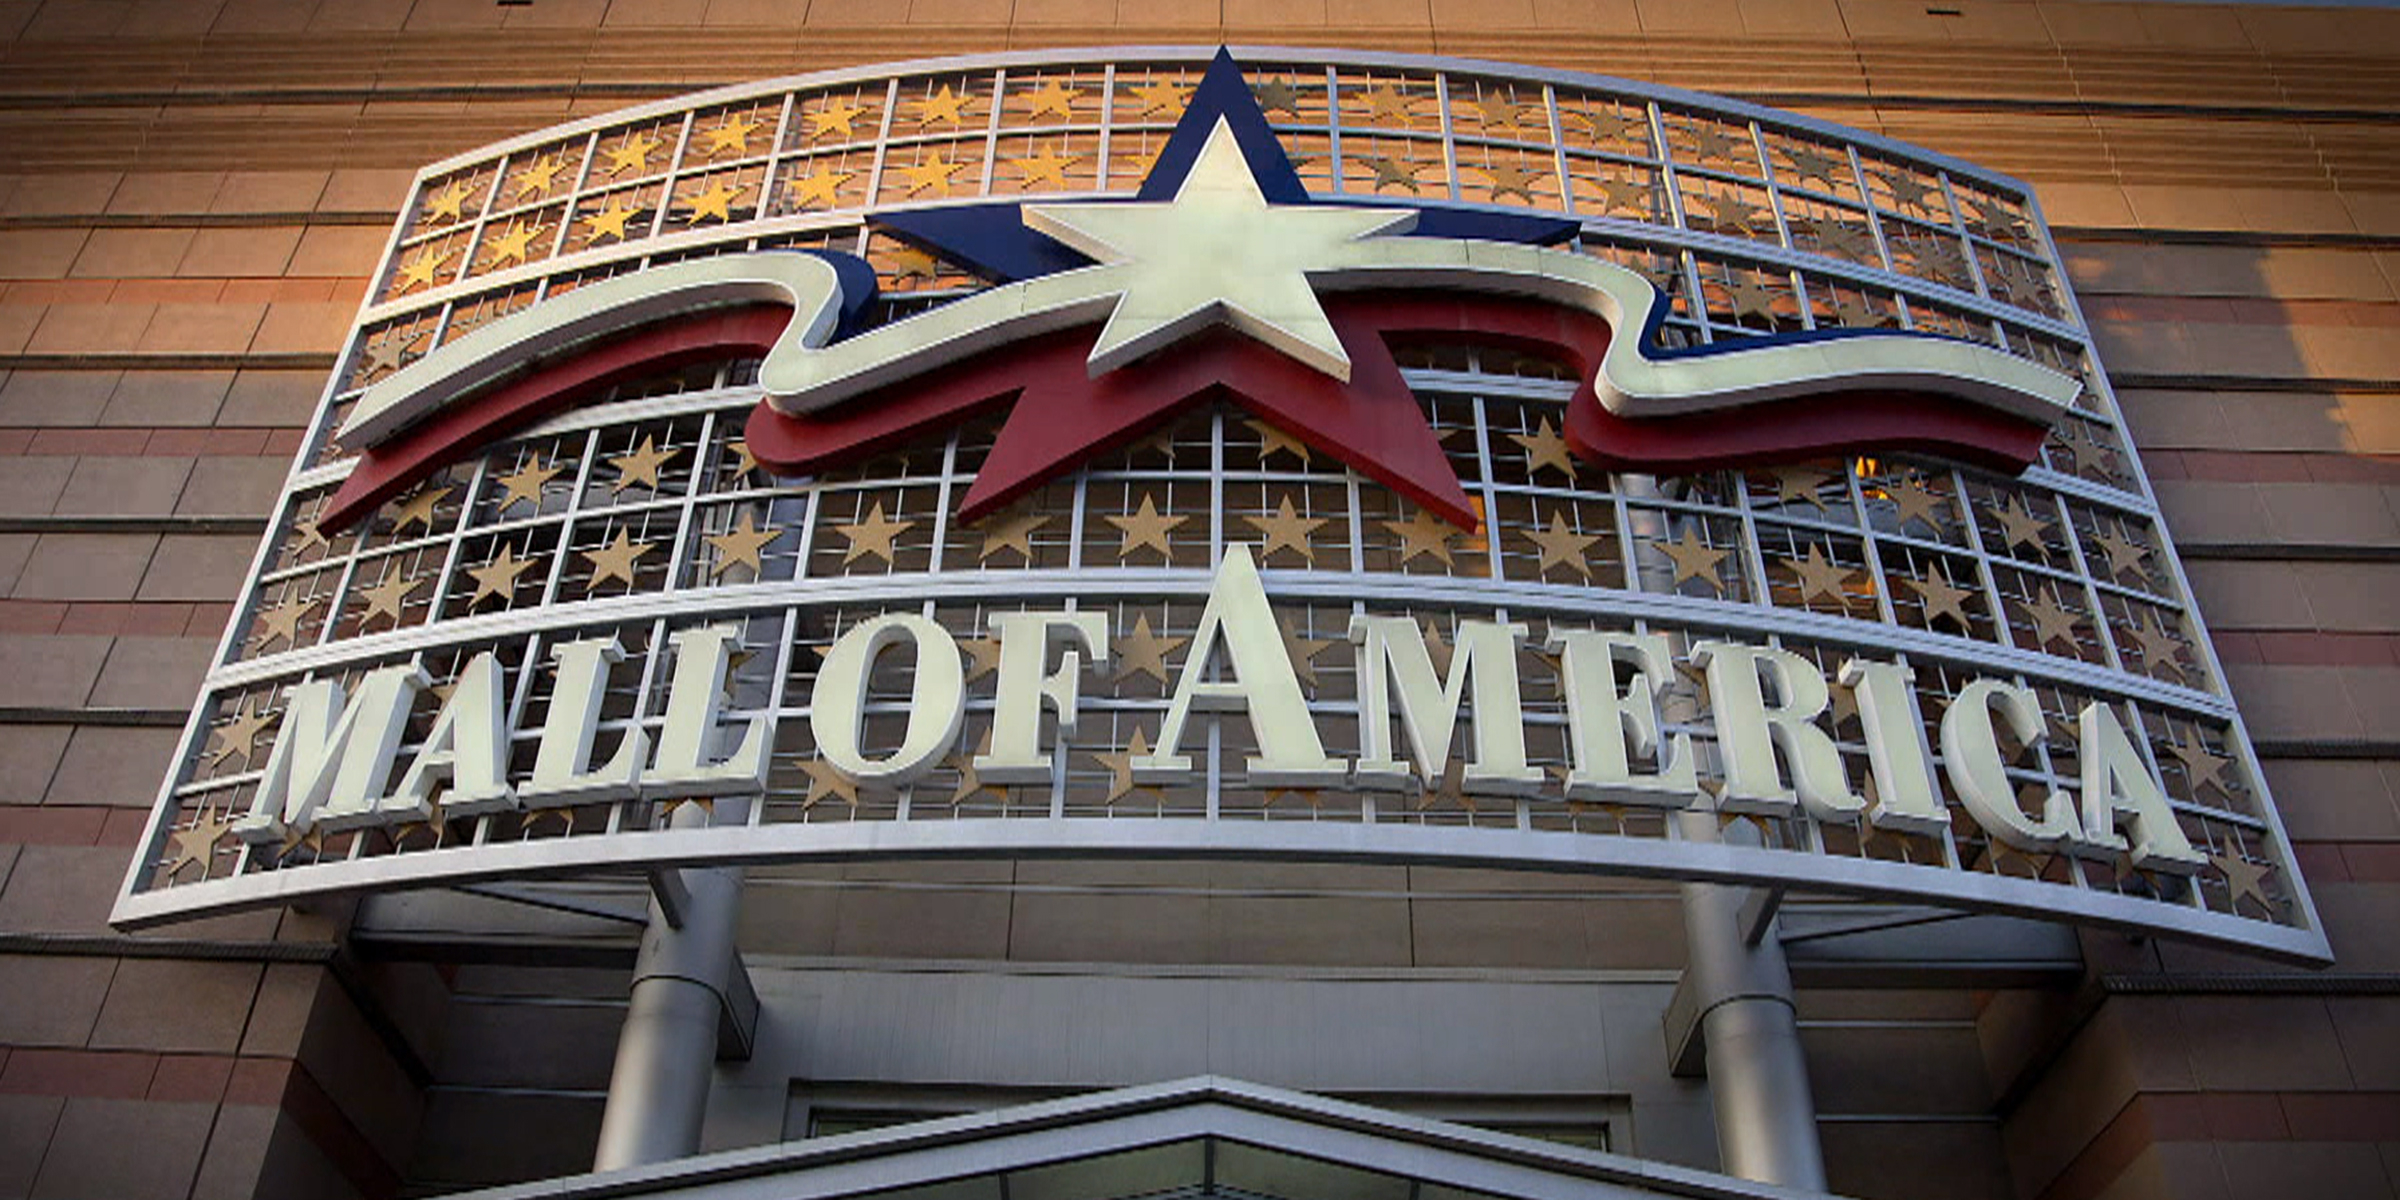 Mall Of America 3rd Floor Map.Boy Thrown From Mall Of America Balcony Is Alert And On The Road To